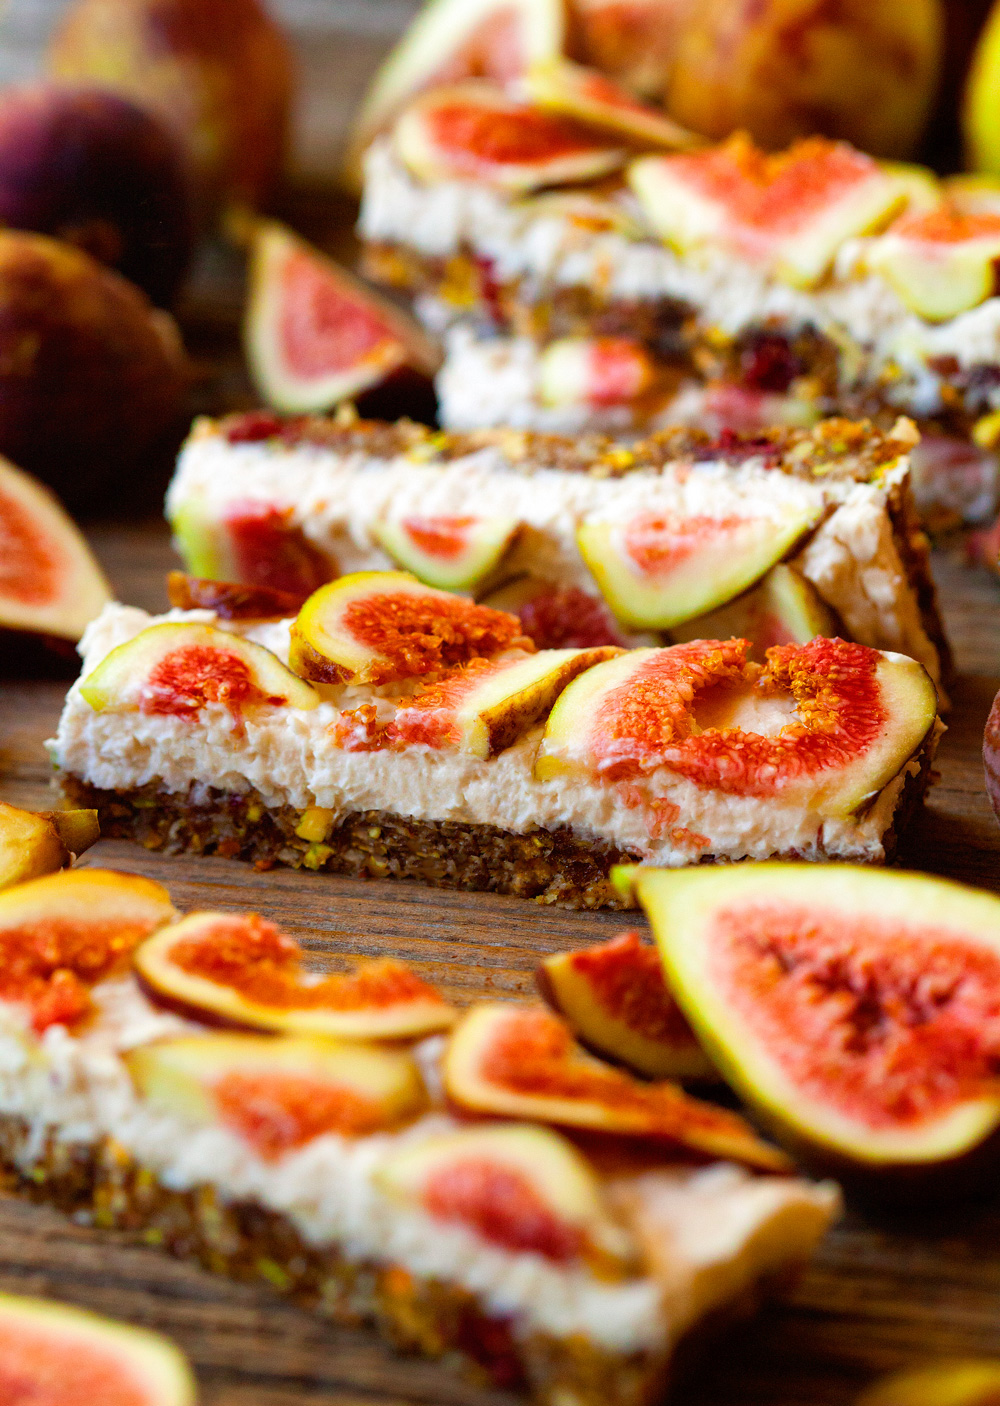 Cheesecake Fig Slice